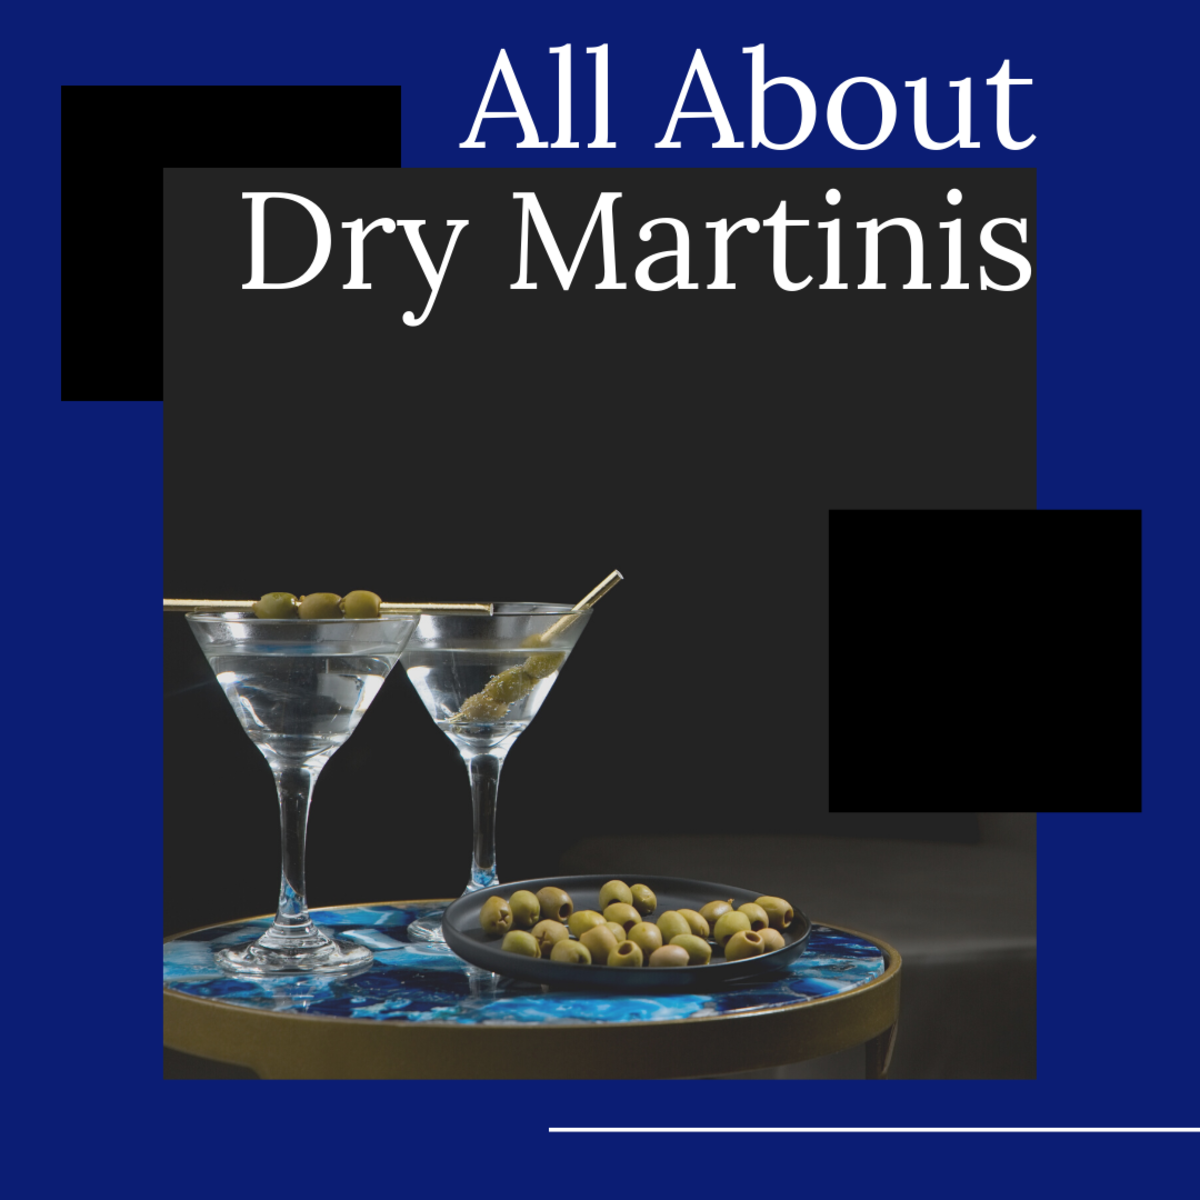 Learn the history of dry martinis.